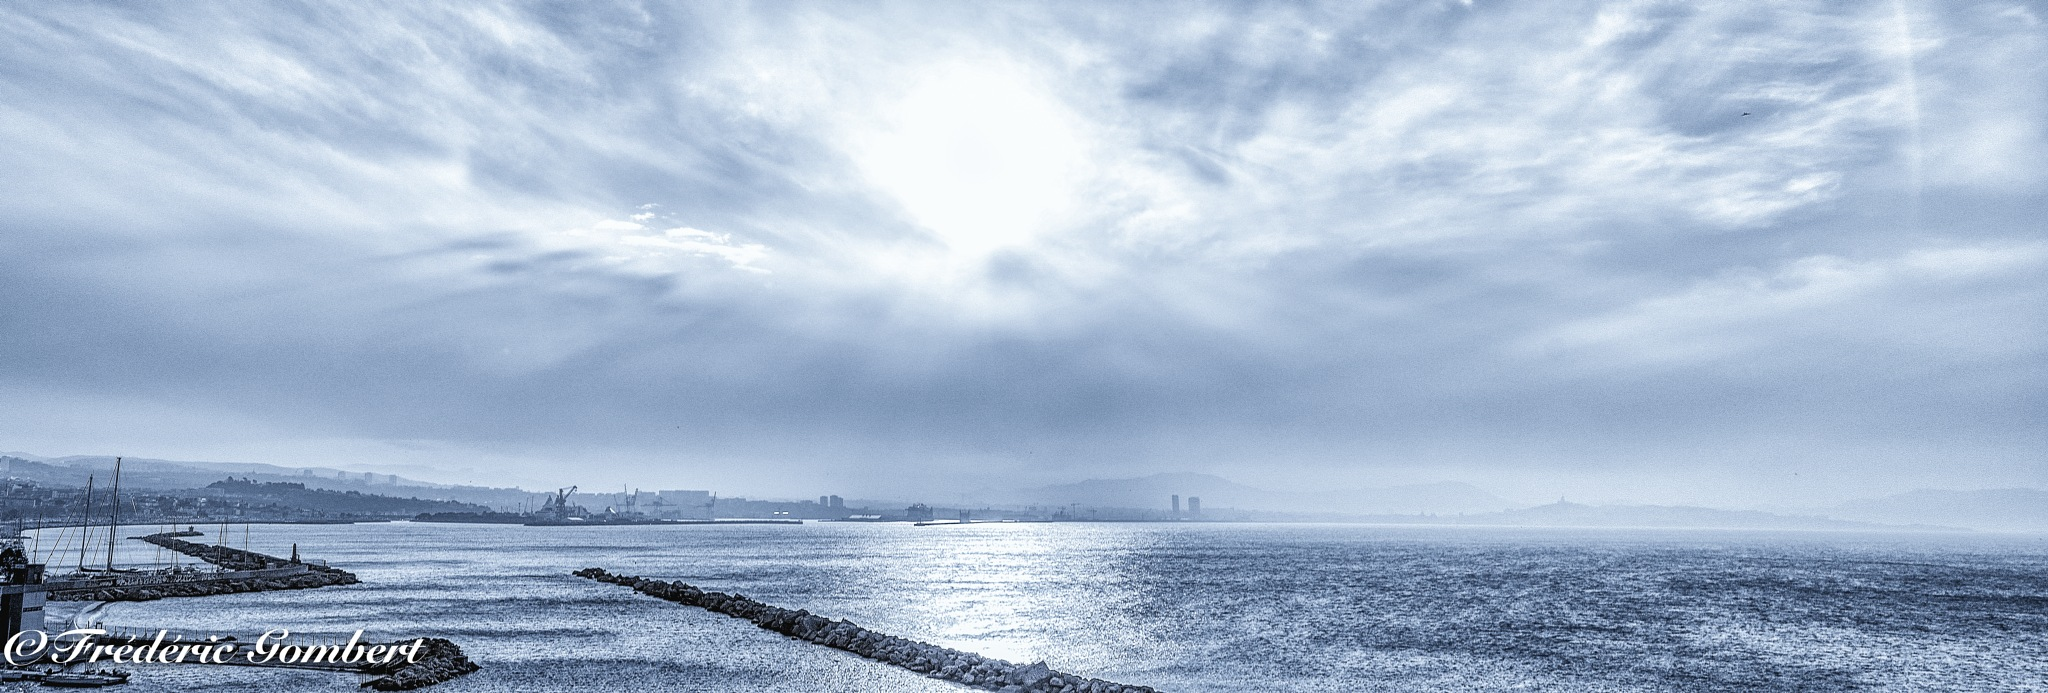 Marseille : Cold Morning by Frederic Gombert